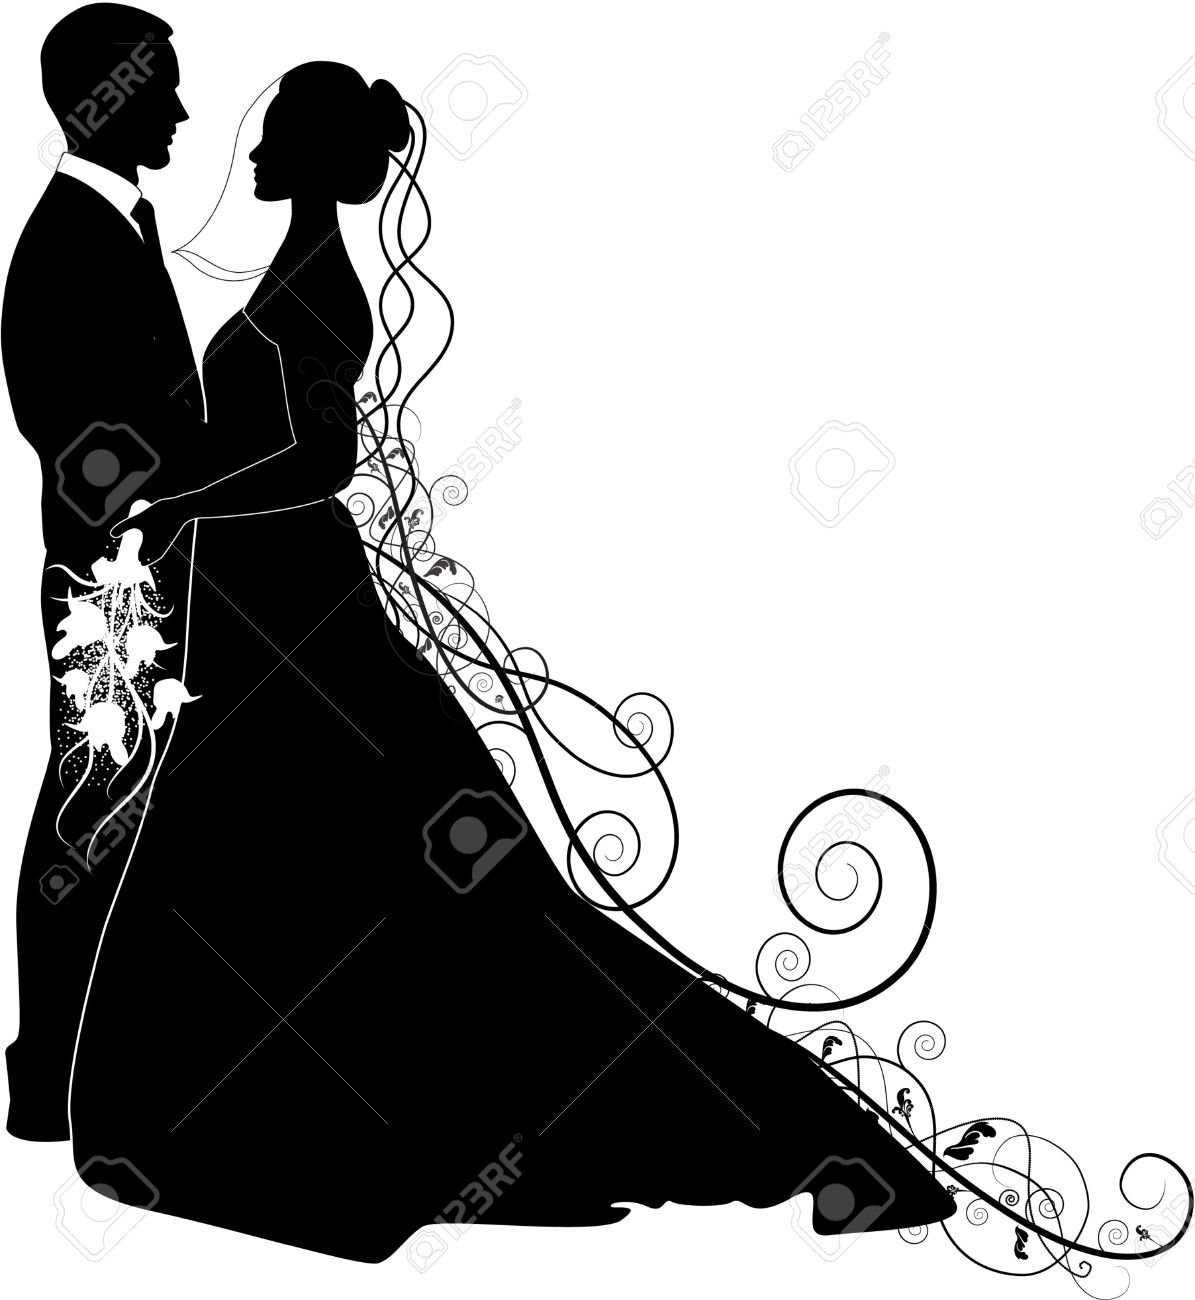 Bride and groom images clipart royalty free Bride And Groom Clipart | Free download best Bride And Groom Clipart ... royalty free